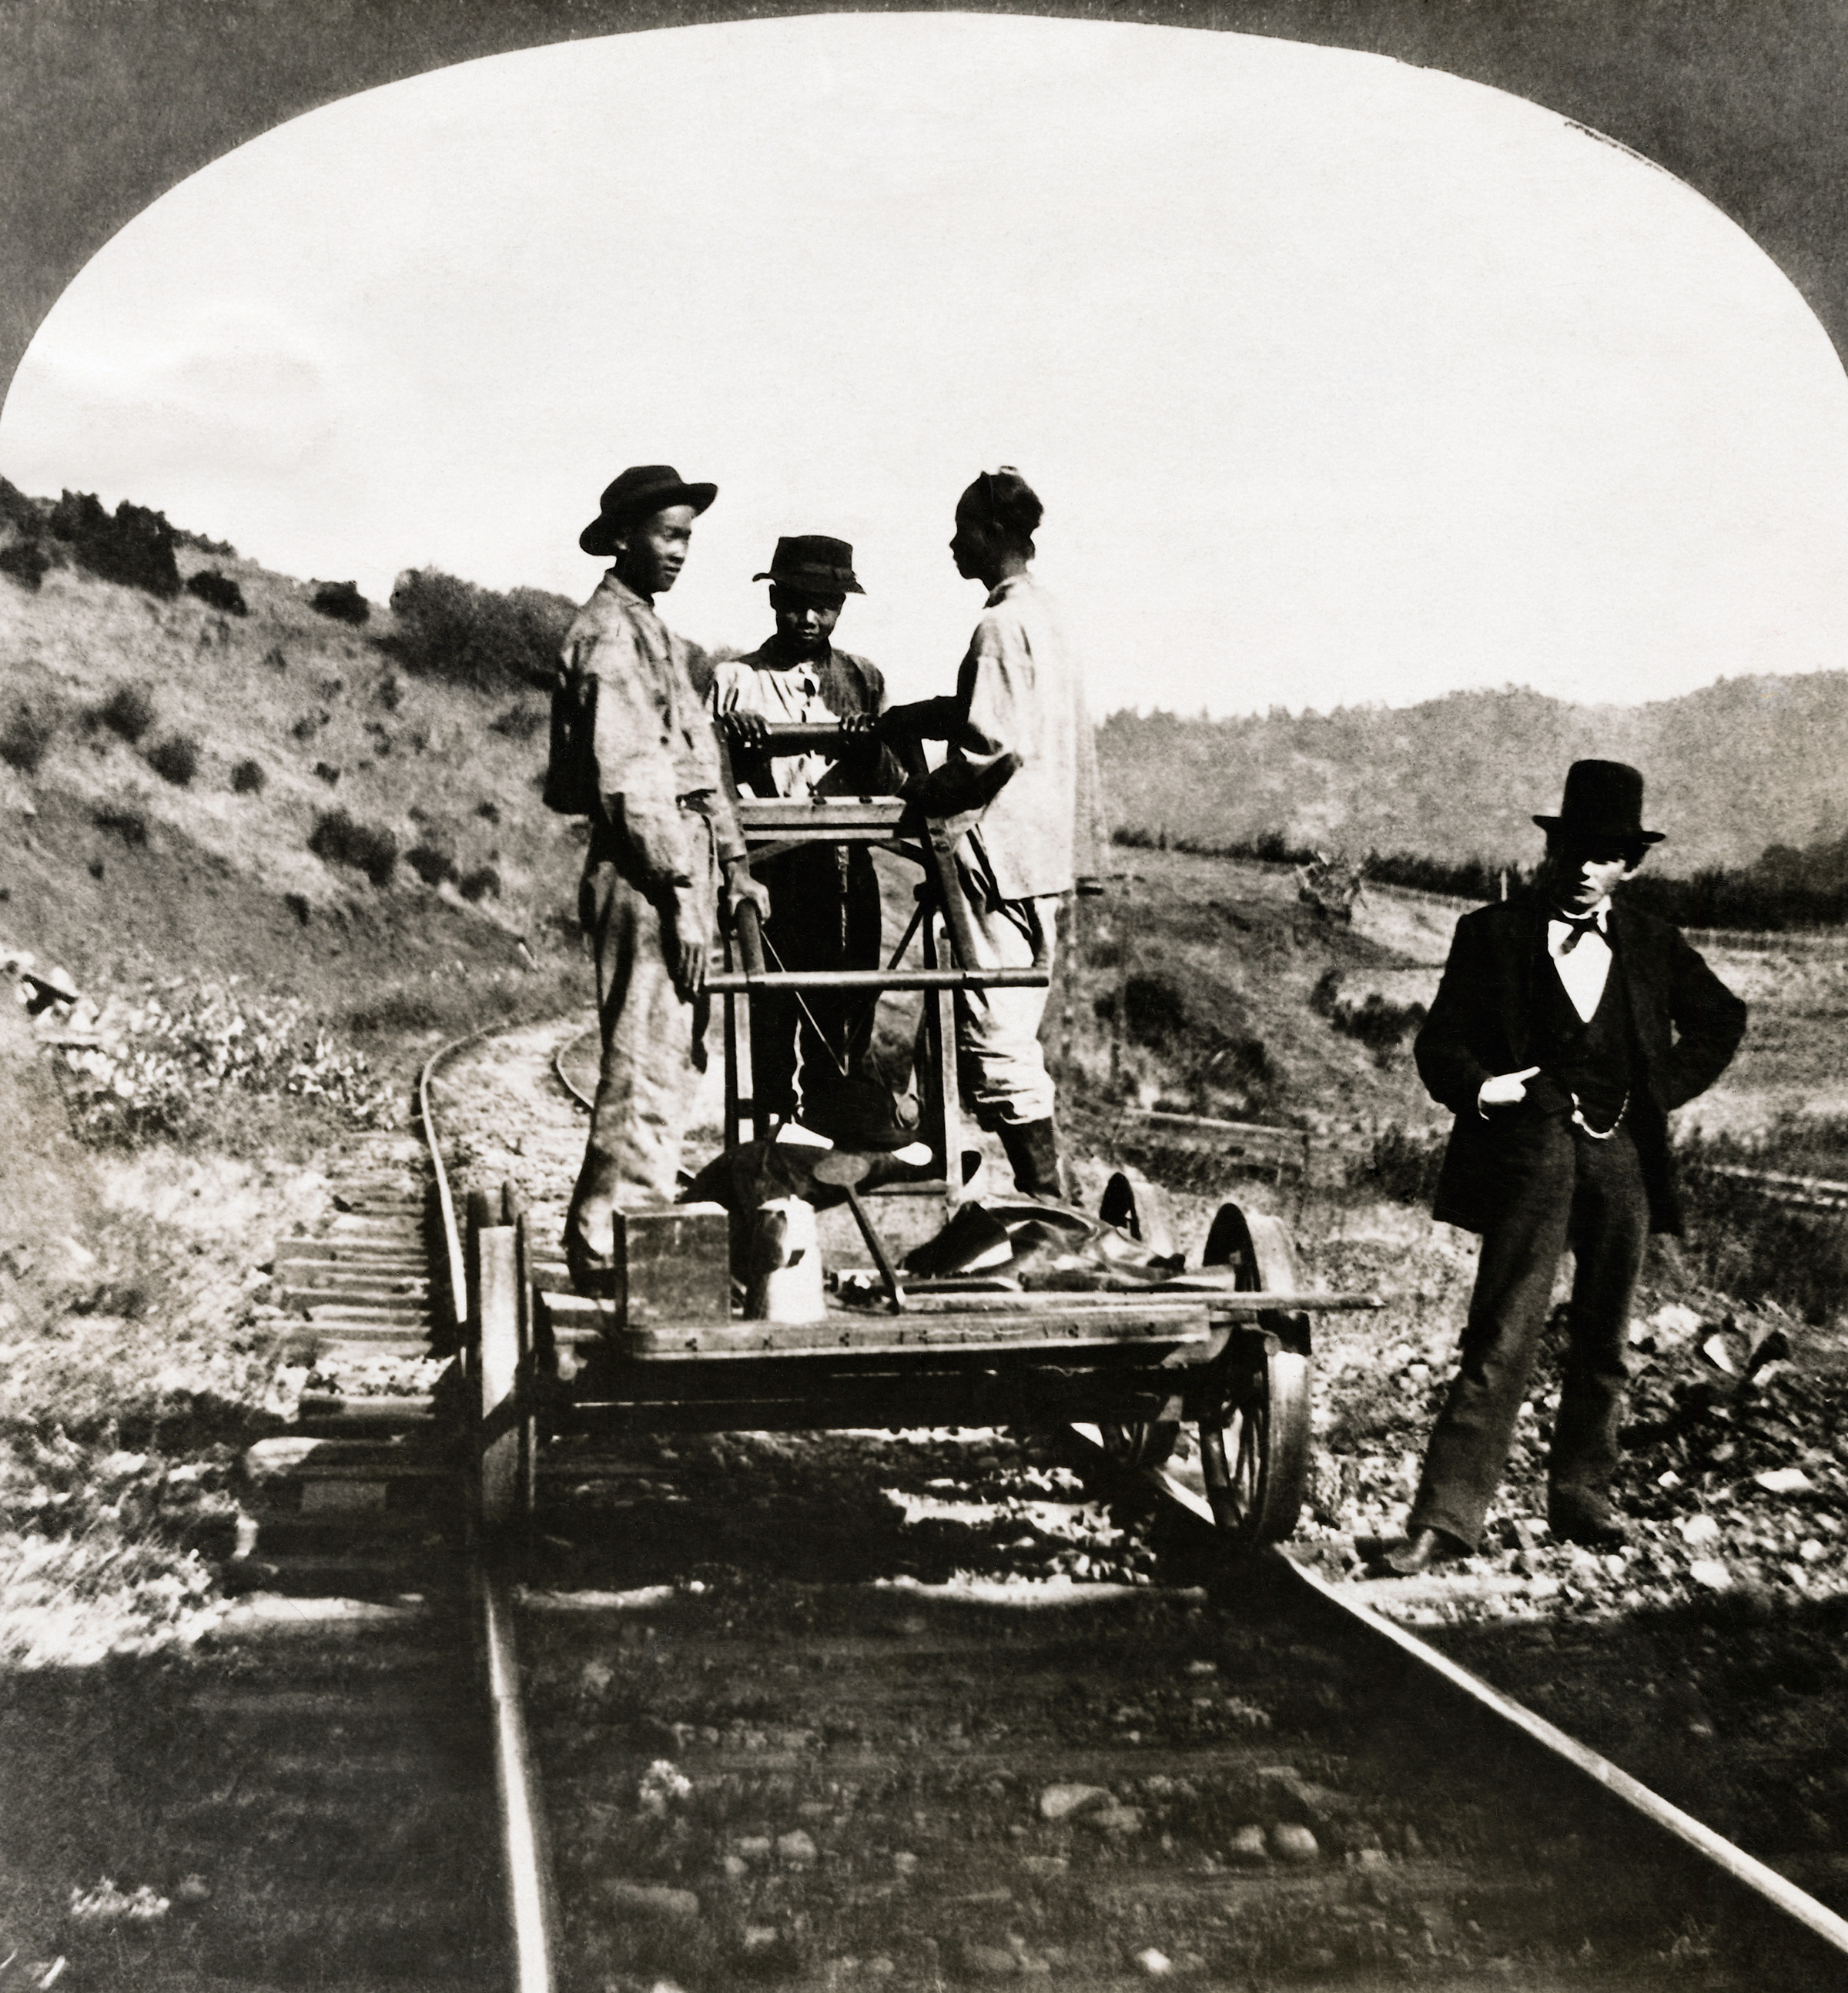 In early California, thousands of Chinese immigrants were employed by the railroads to do the toughest work; circa 1890.